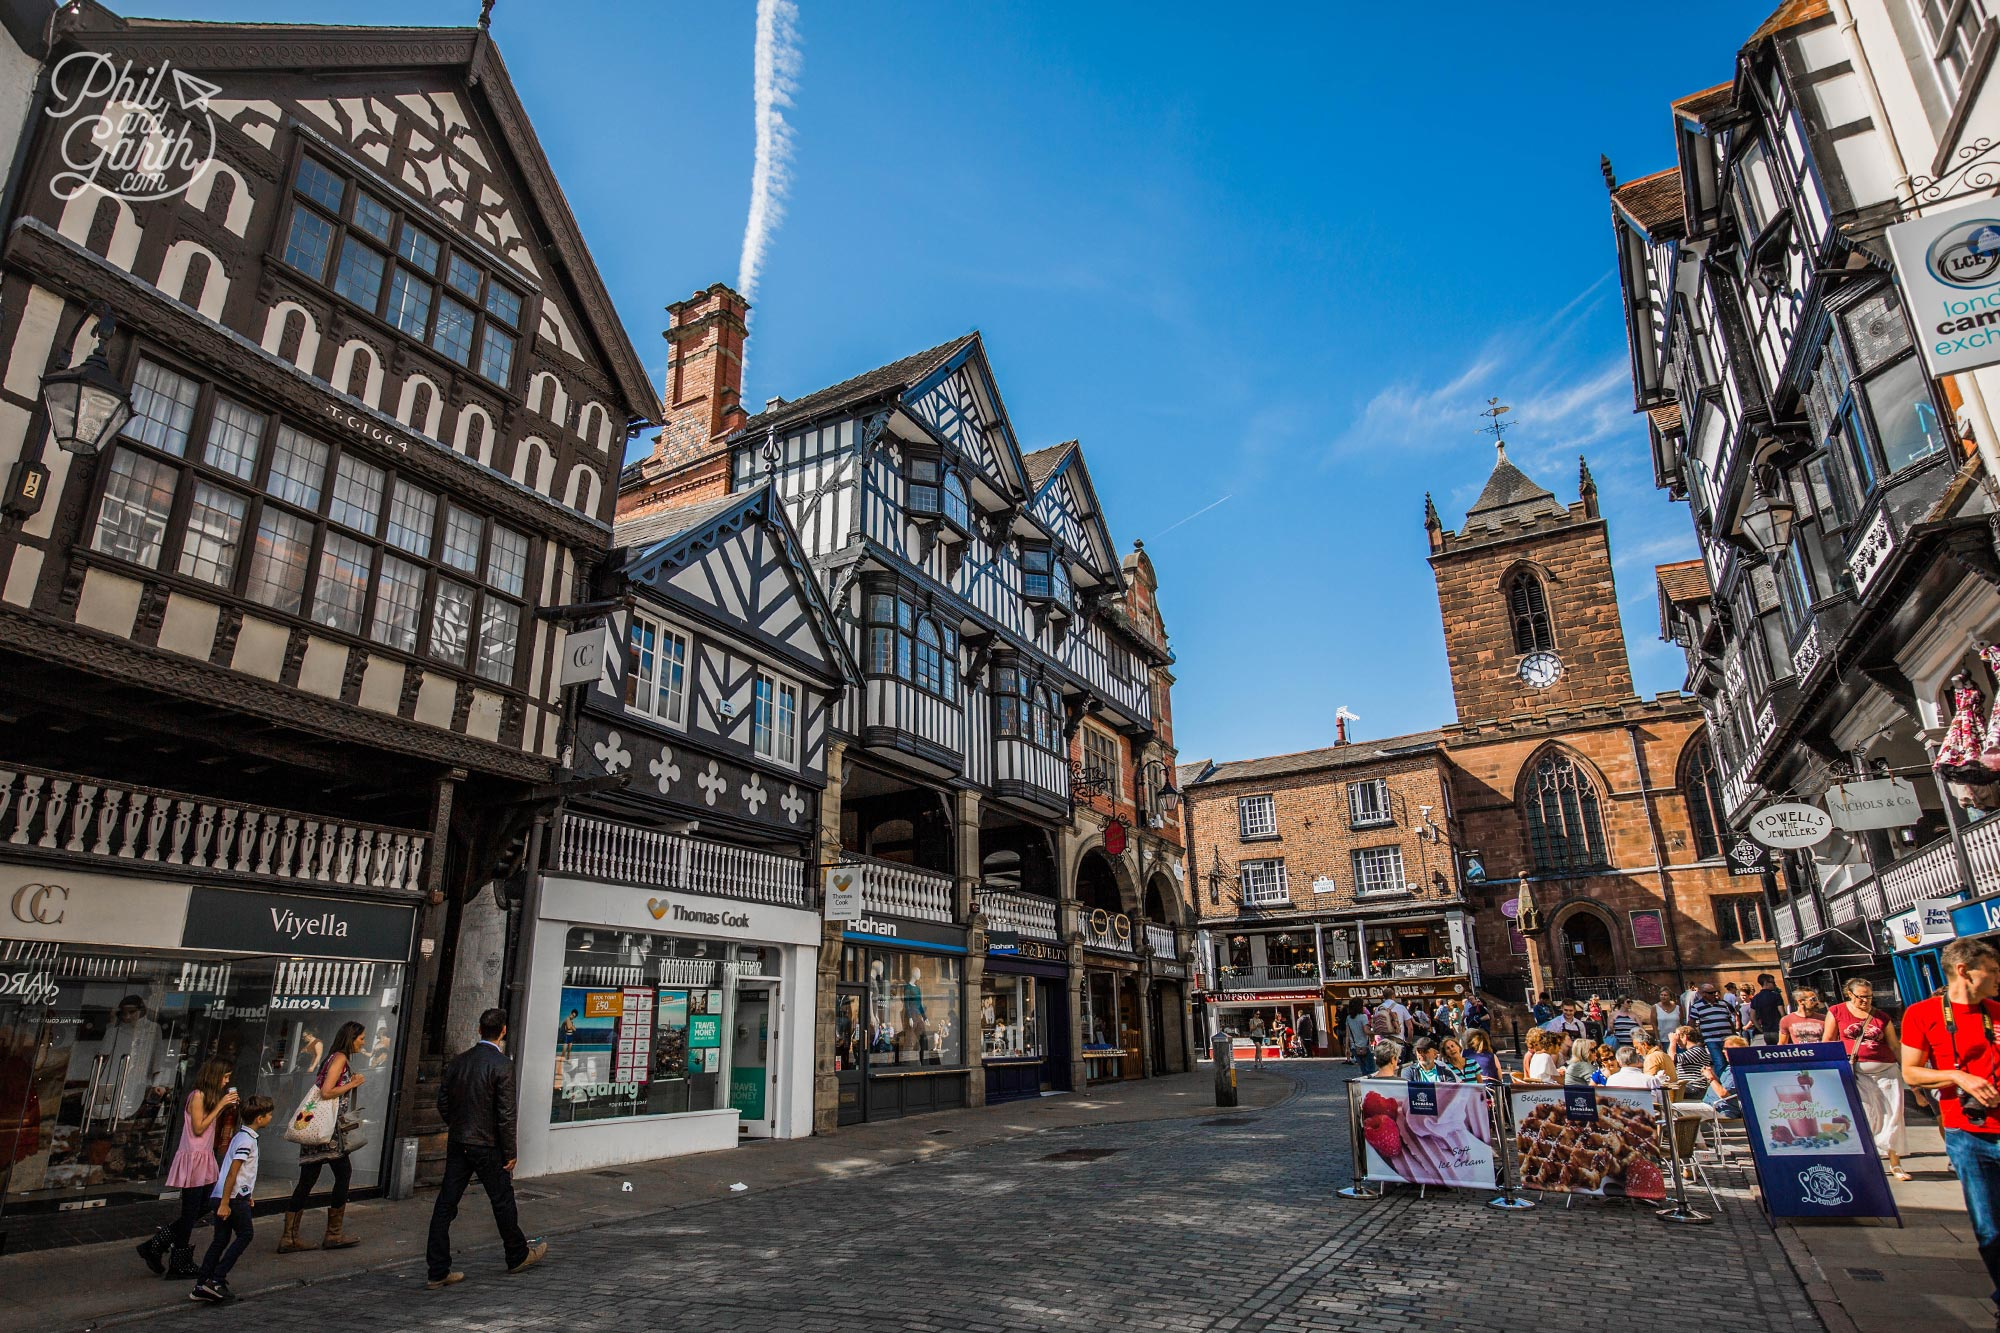 Chester's Rows - two tiered shopping arcades